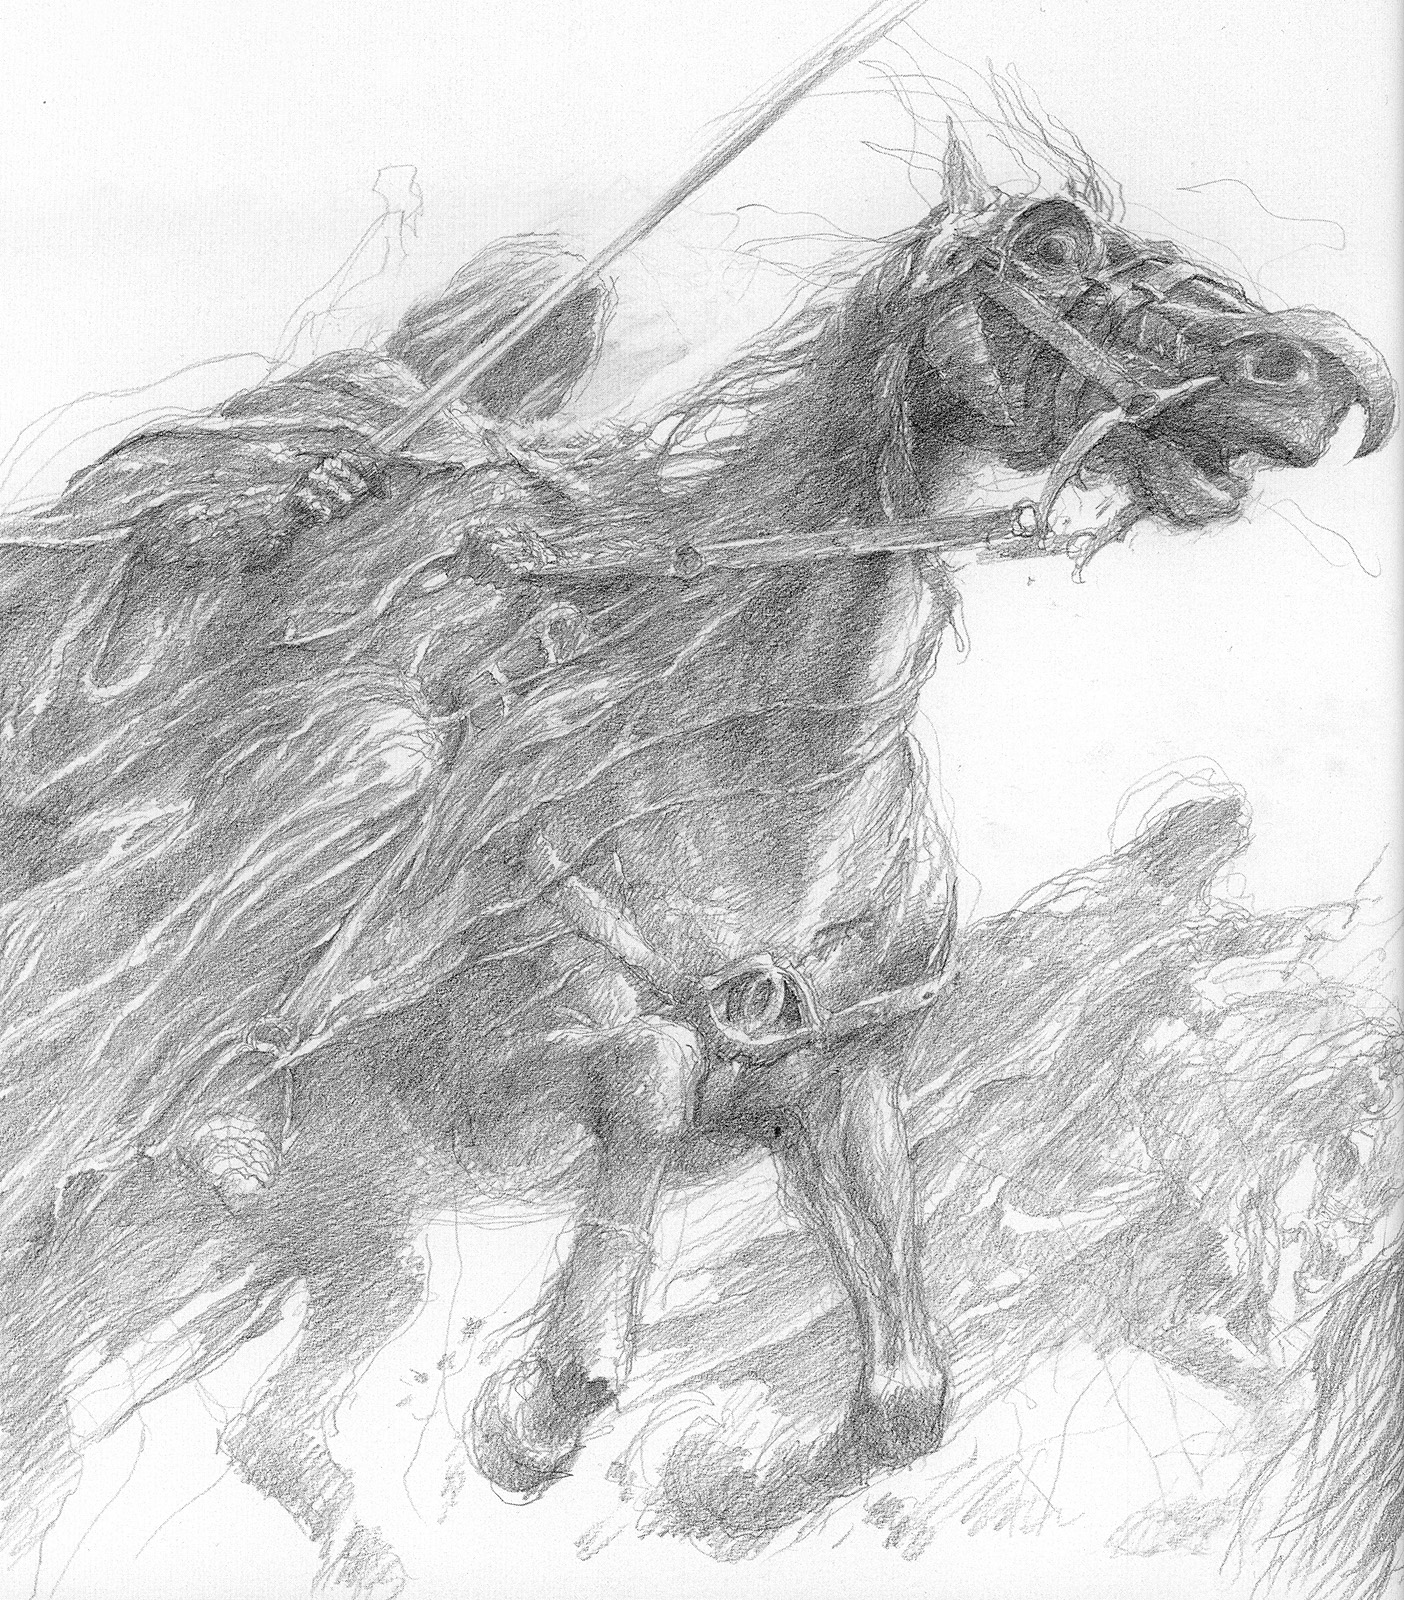 Nazgul by Lee. Look at that beautiful gestural line work in graphite! The Nazgul speak deeply to the reptilian fear of the unkown and threats in the night.